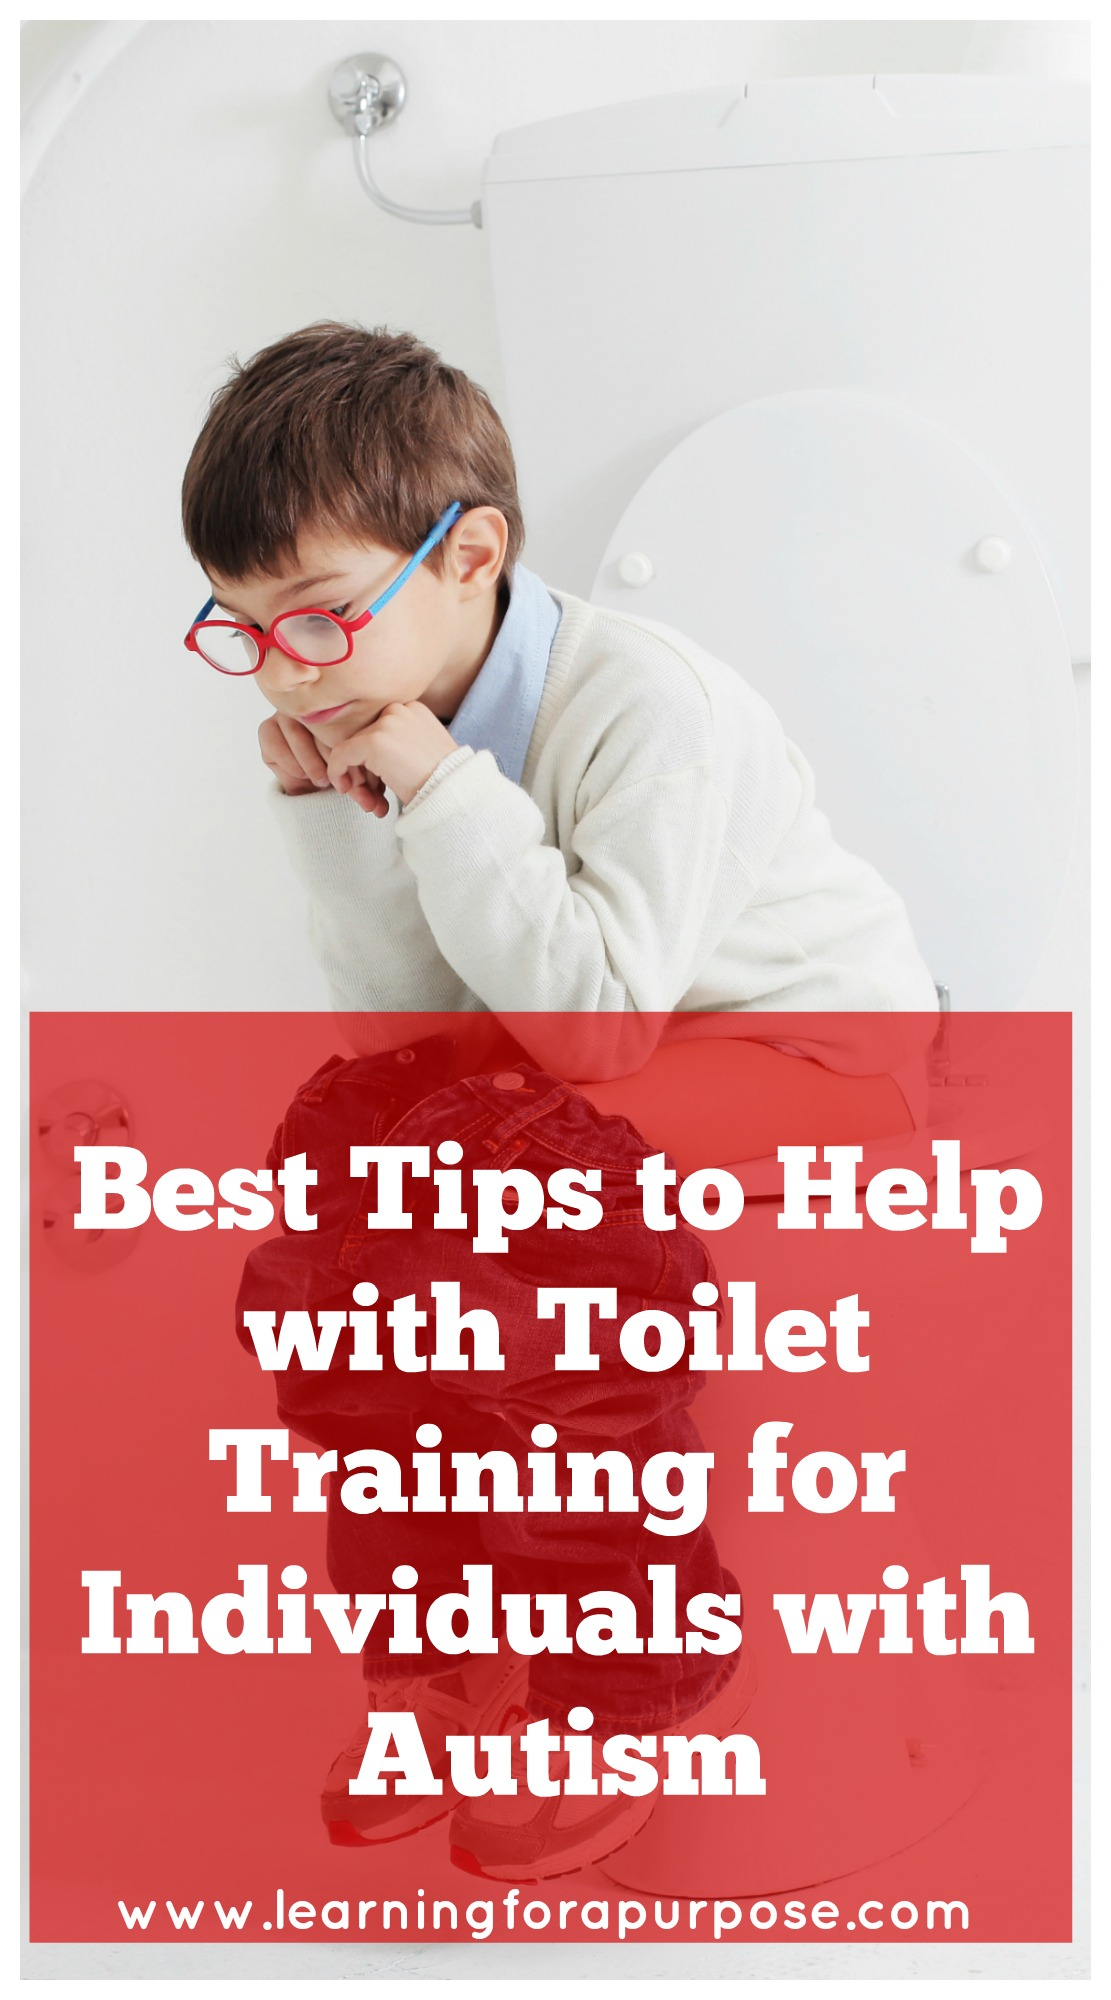 Best Tips to Help with Toilet Training for Individuals with Autism